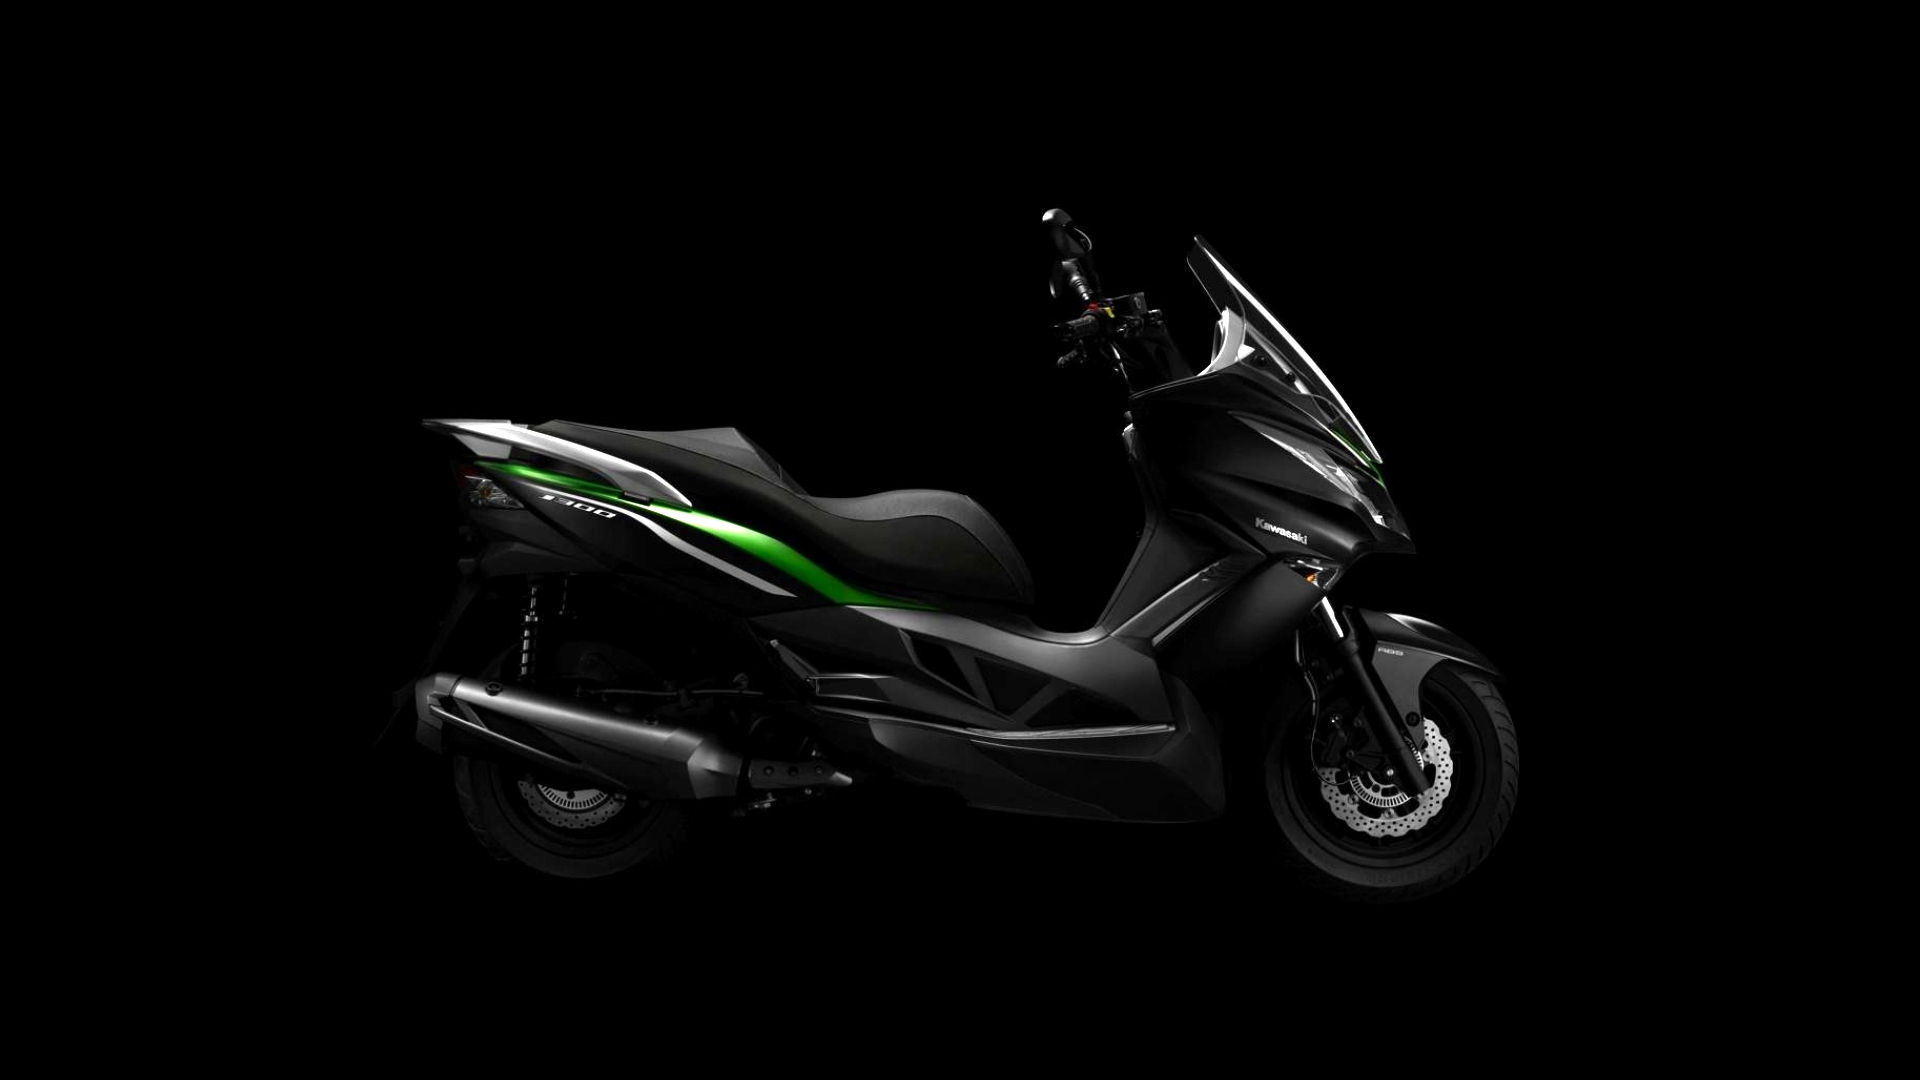 First Pictures Of The Kawasaki J300 Maxi Scooter